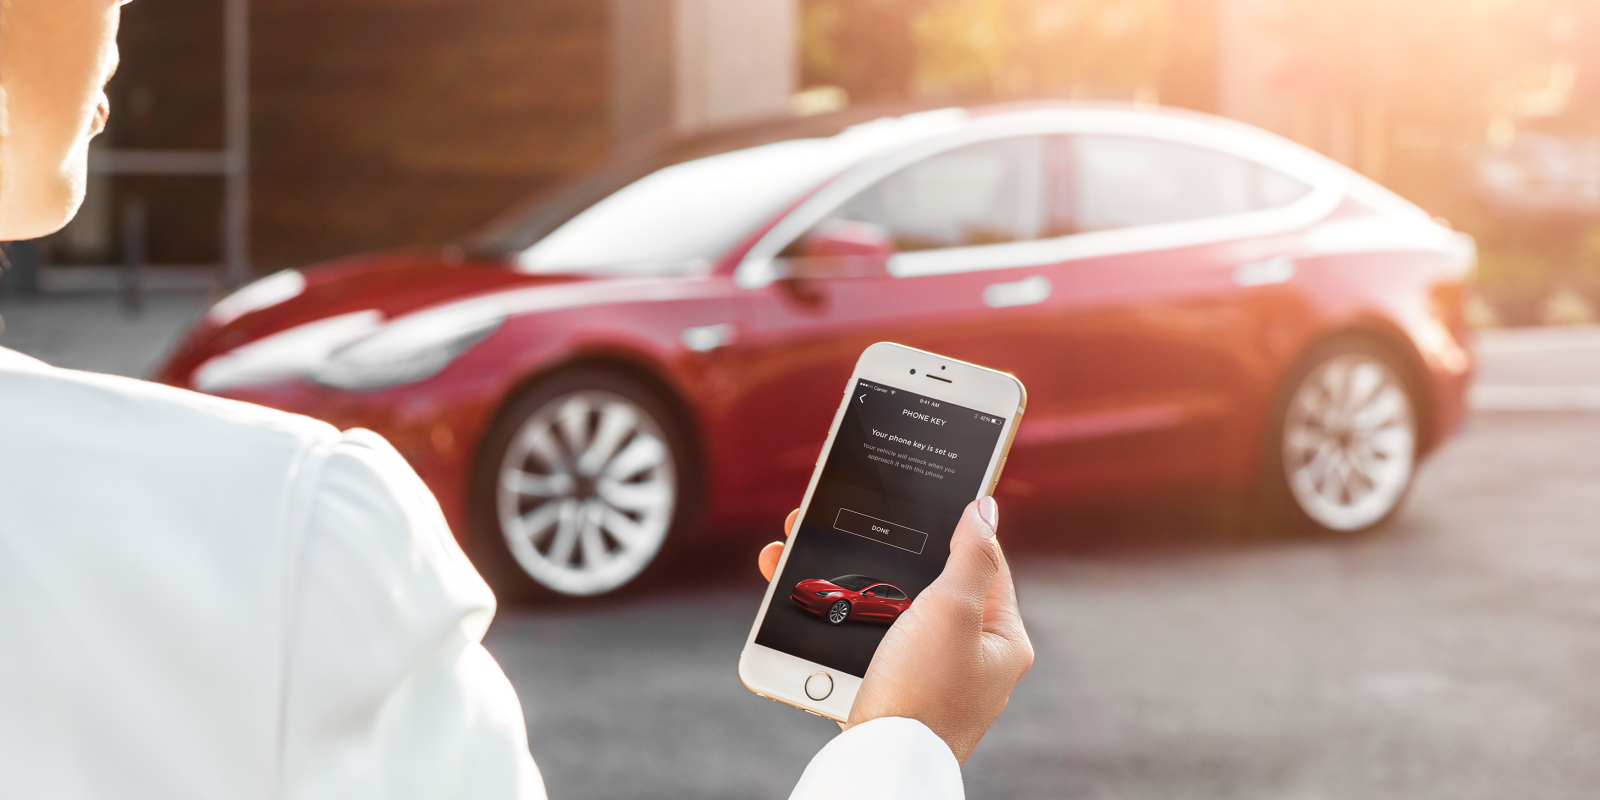 model-3-my-tesla-phone-app-as-key1-e1503106067214.png